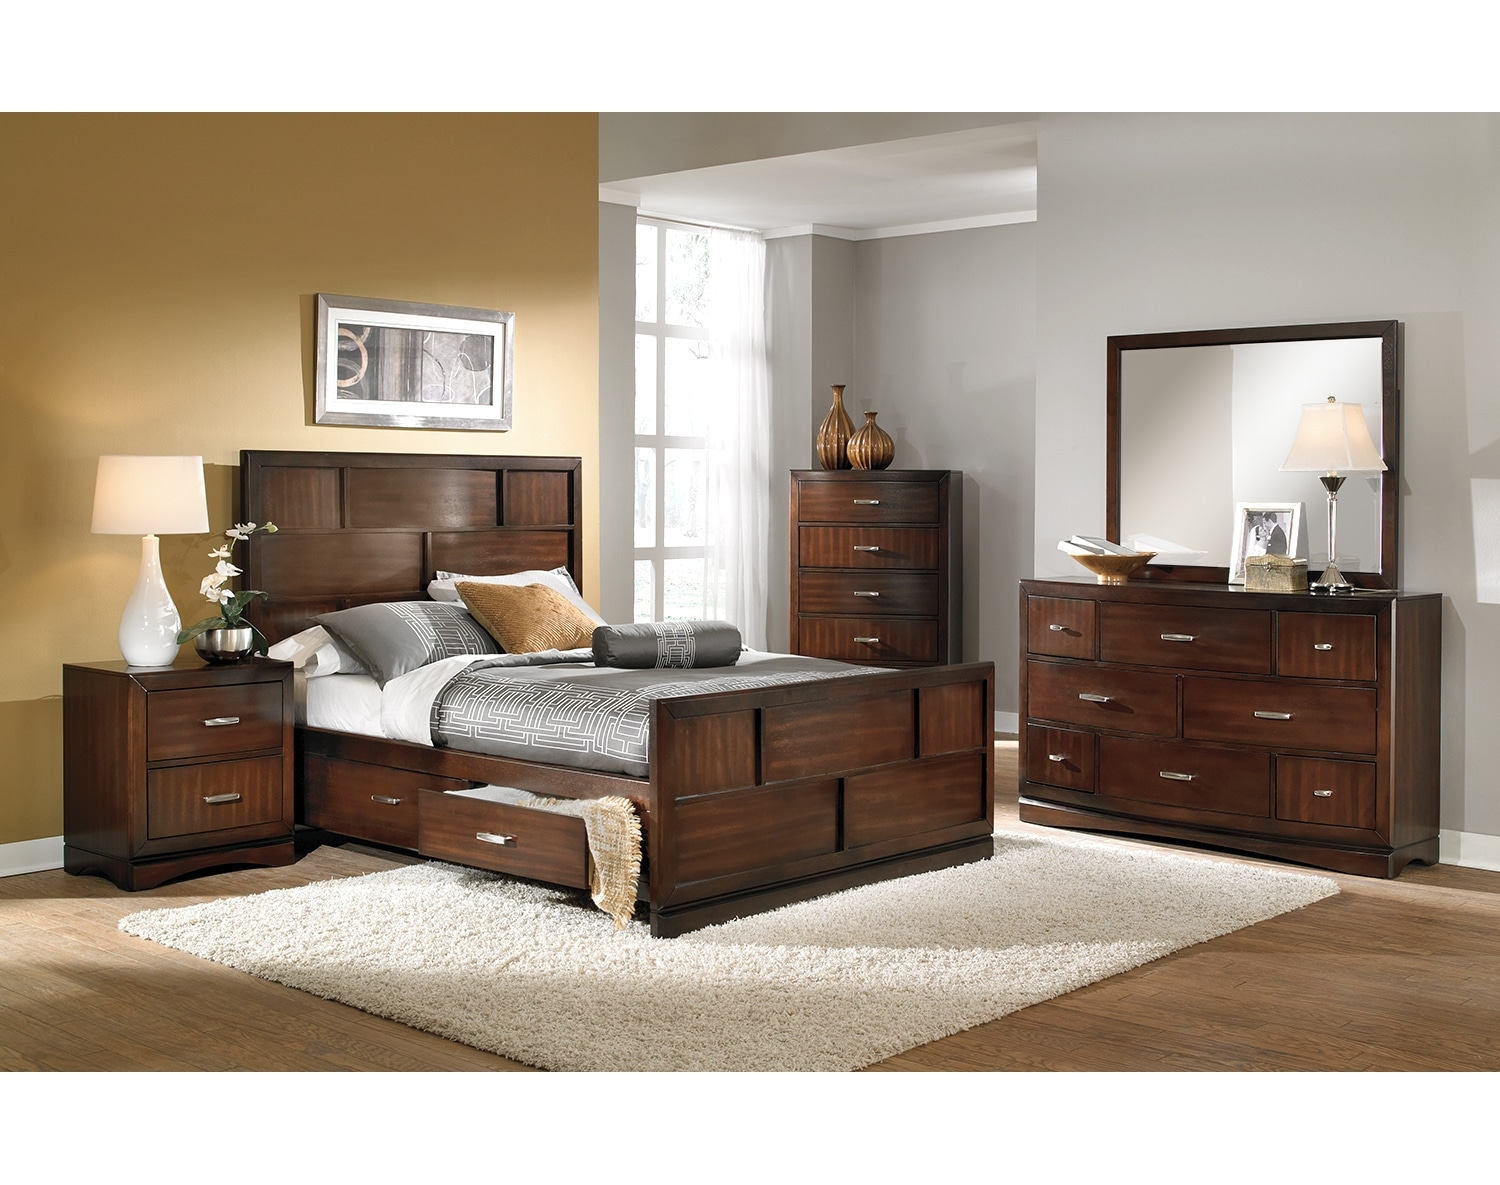 the toronto collection pecan value city furniture and mattresses accent tables battery operated table lamps with shade uttermost mirrors target trunk coffee floor tom legs living